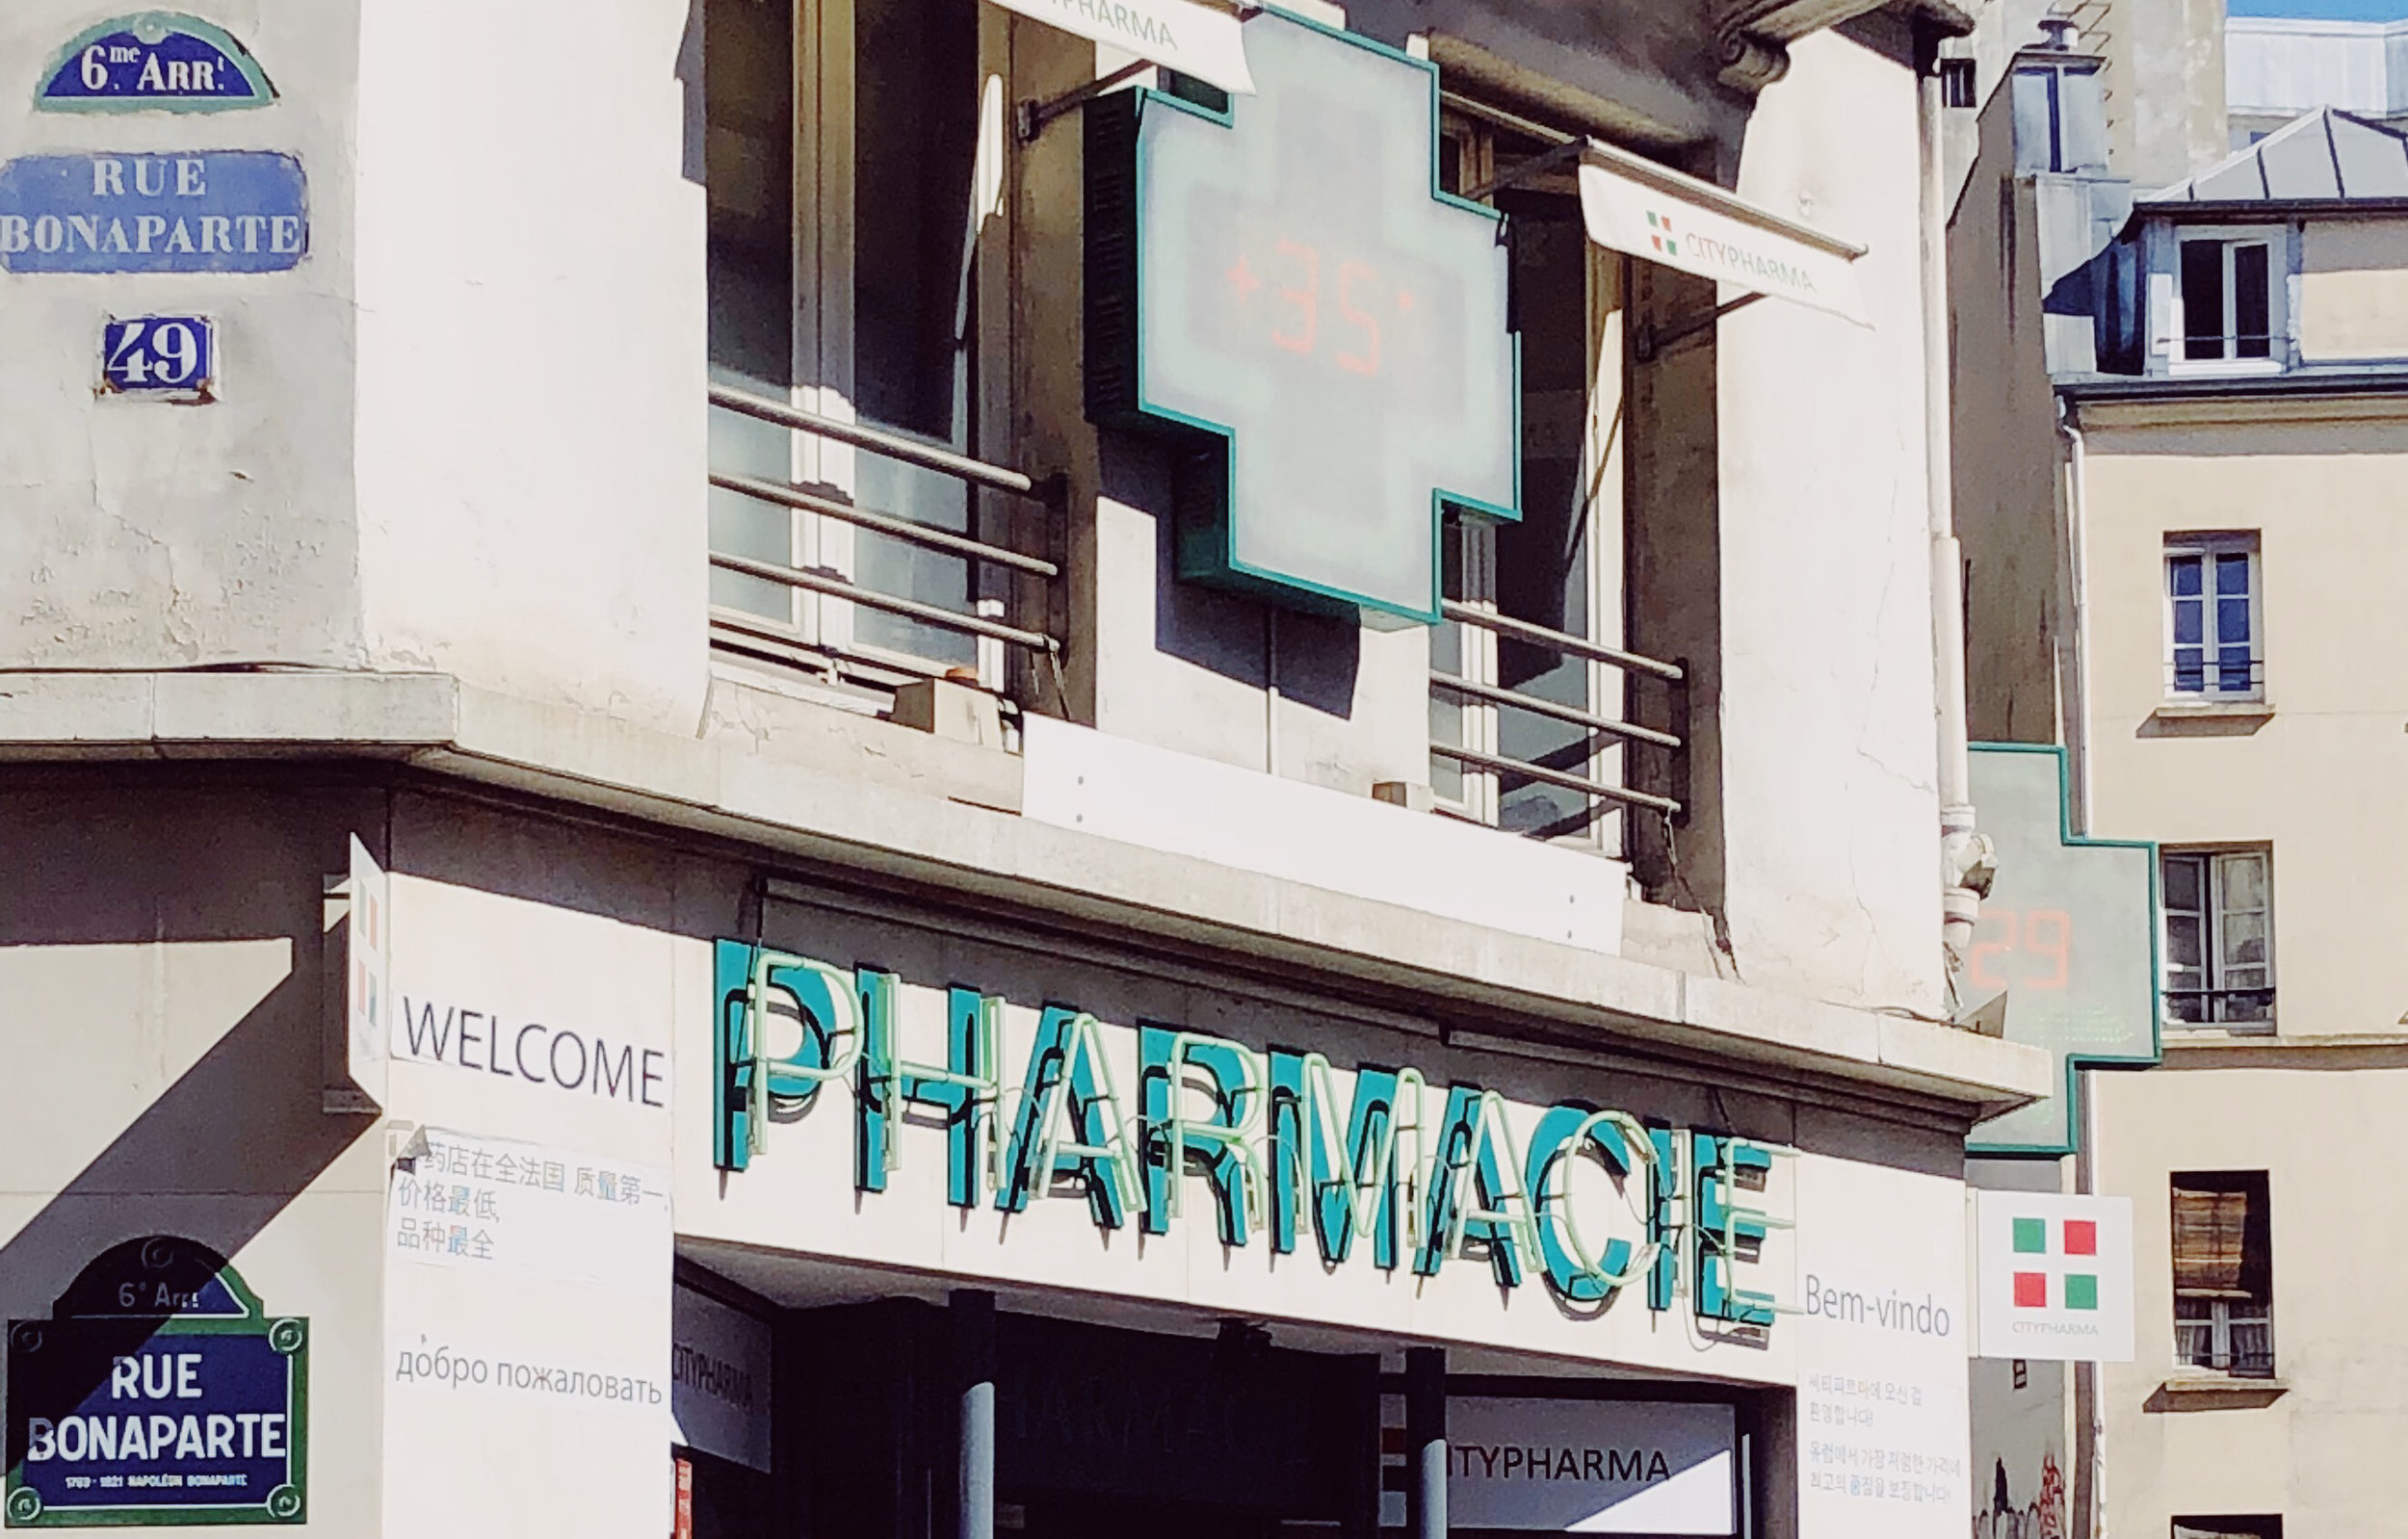 CityPharma. All pharmacies are marked with a big green plus sign and will usually say PHARMACIE in big, green letters. There are pharmacies everywhere in Paris, but CityPharma is my fave.